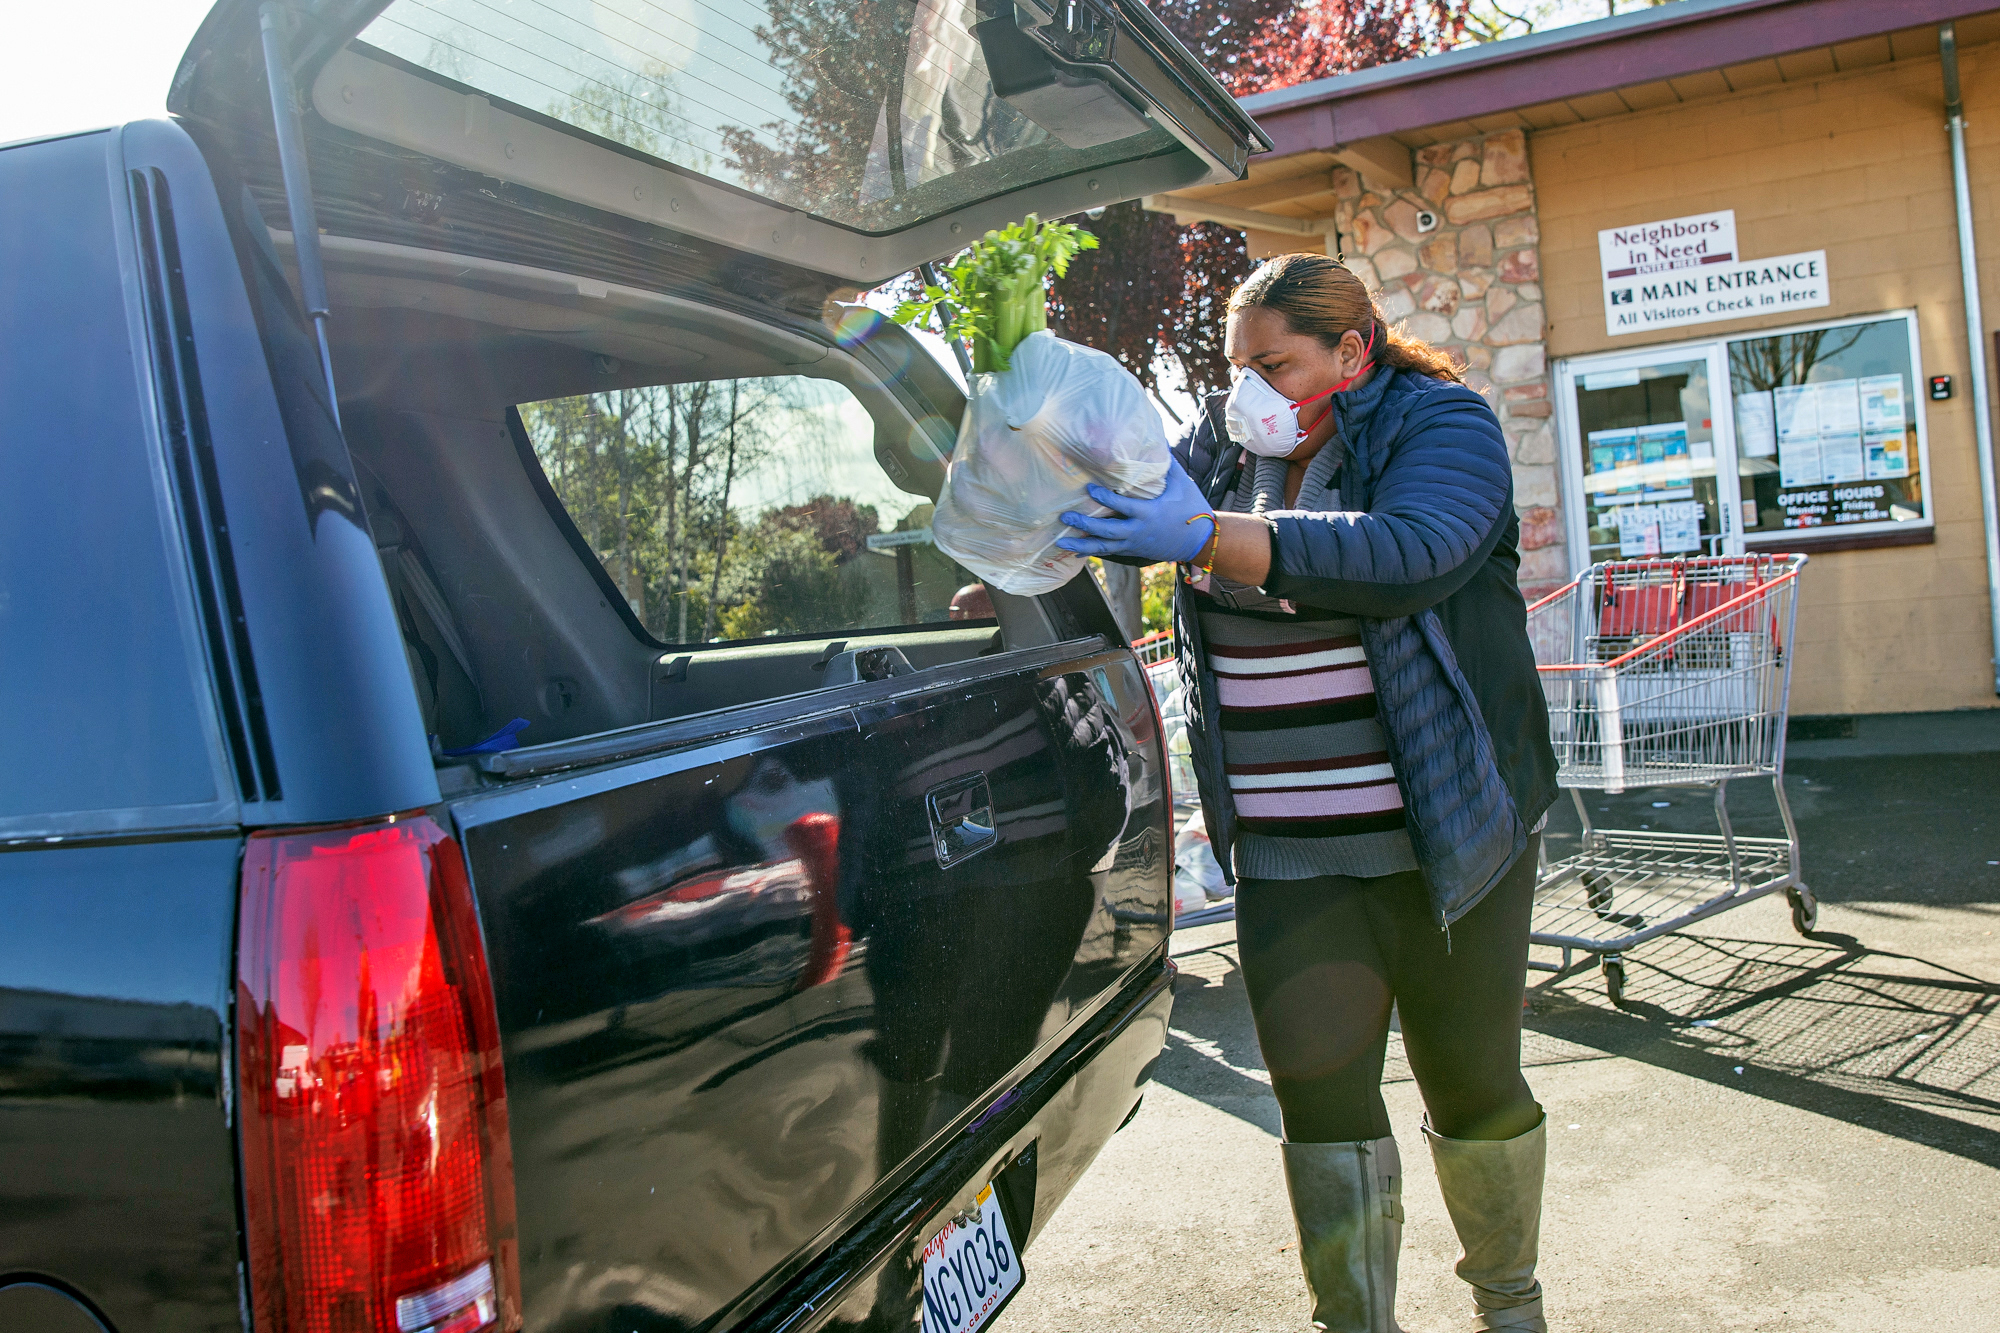 Lene Lauese, a staff member at the nonprofit Ecumenical Hunger Program, puts a bag of produce in a client's car at a drive-through station set up in East Palo Alto on March 19. Photo by Magali Gauthier.